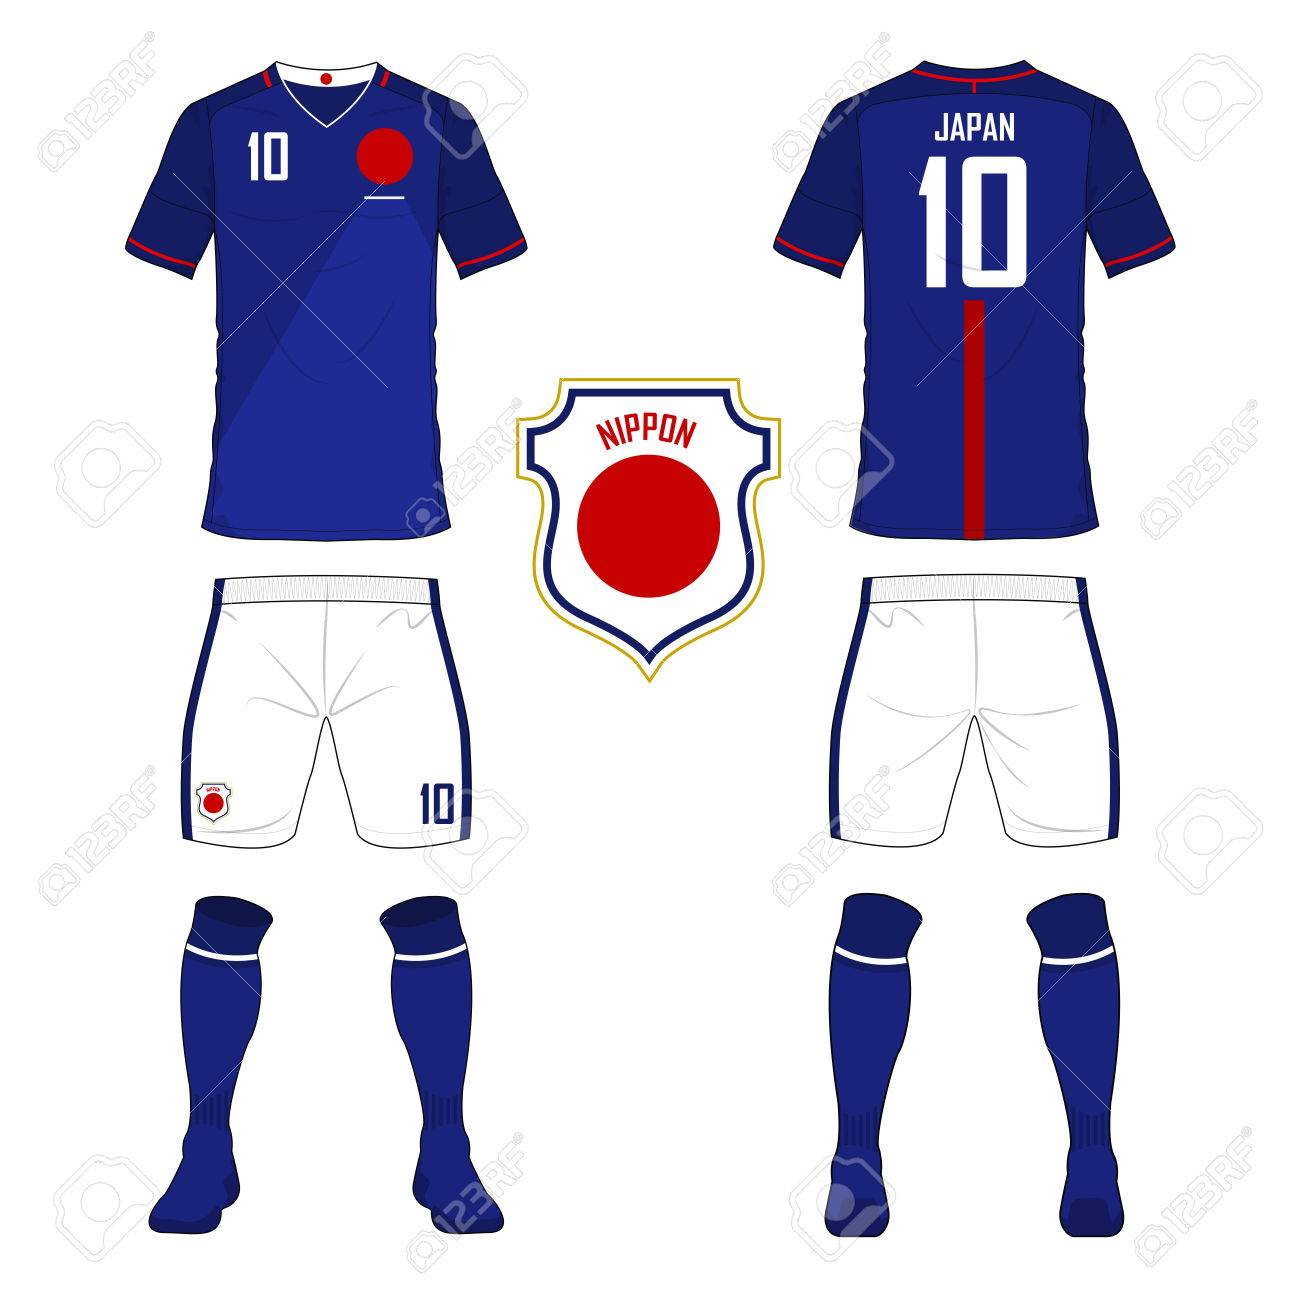 huge selection of 8b9b8 64ec5 Set of soccer jersey or football kit template for Japan national..